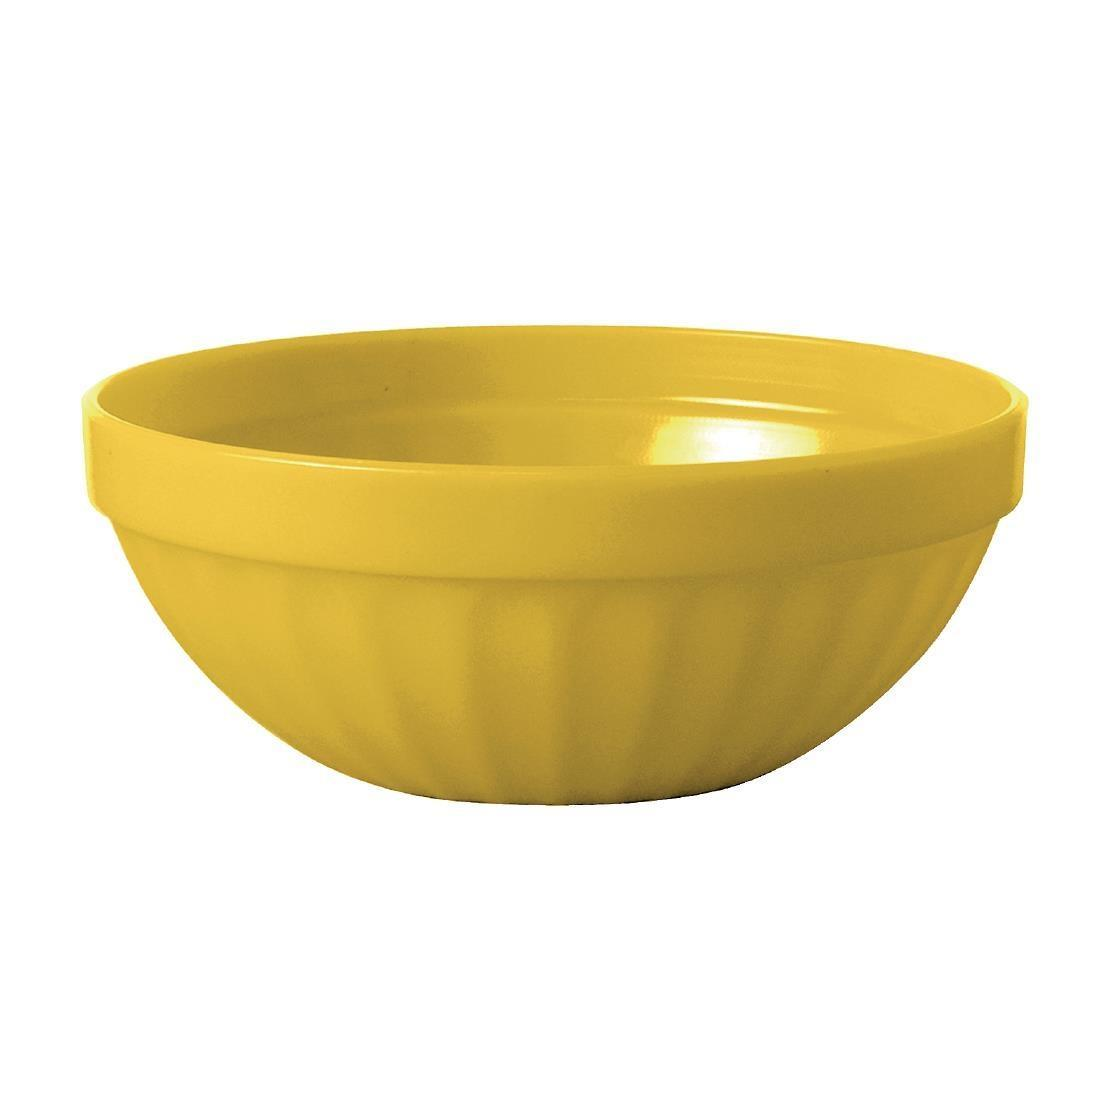 Kristallon Polycarbonate Bowls Yellow 102mm - Case 12 - CE274